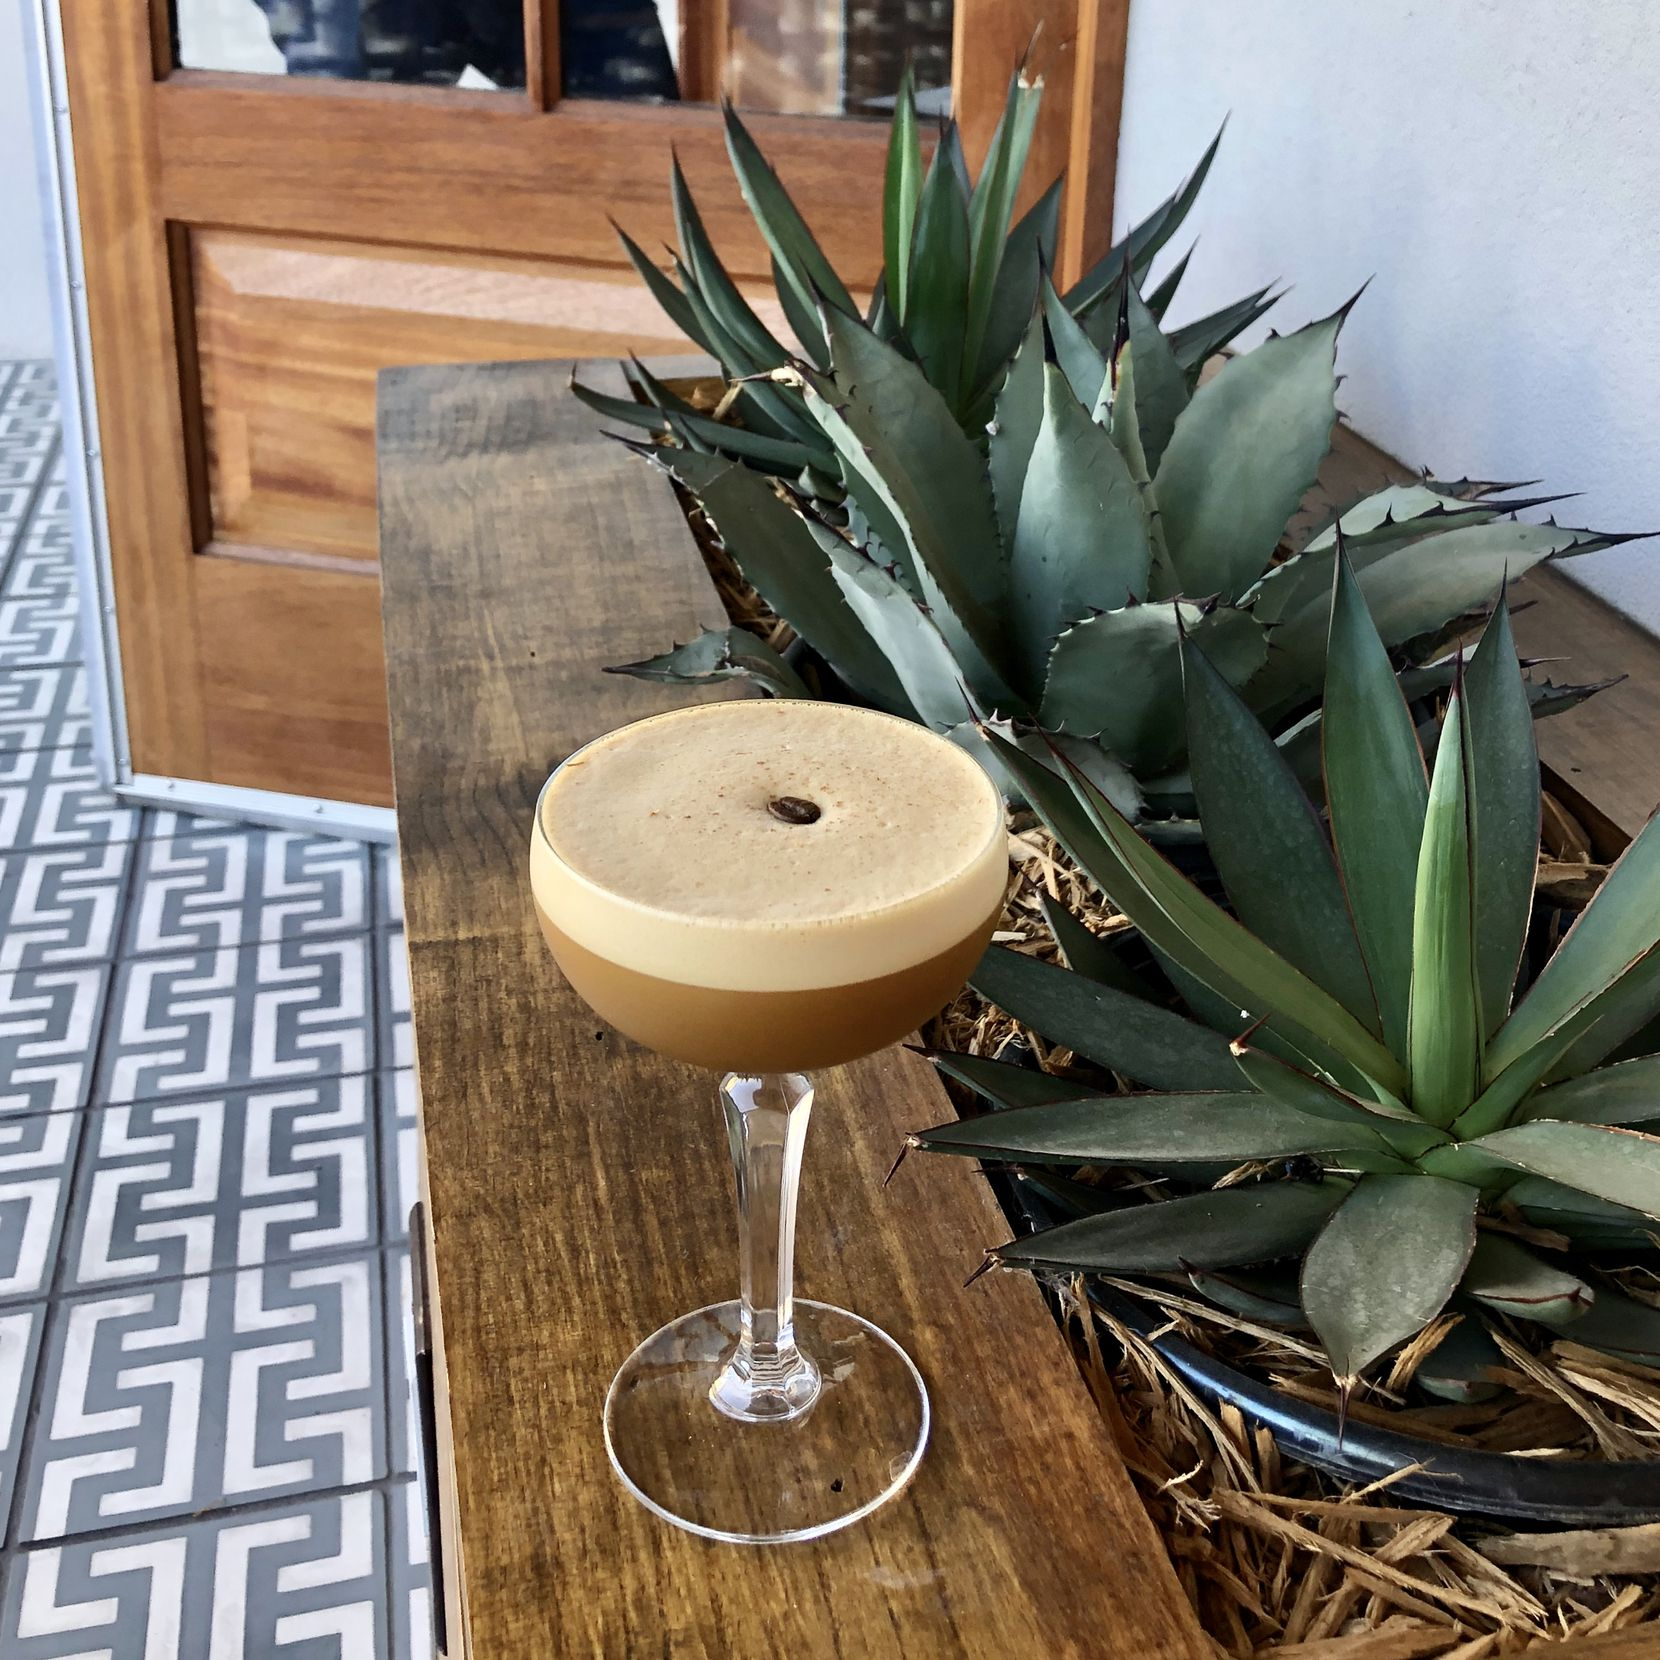 The Espresso Martinez at Xaman Cafe in Oak Cliff is a stunner.